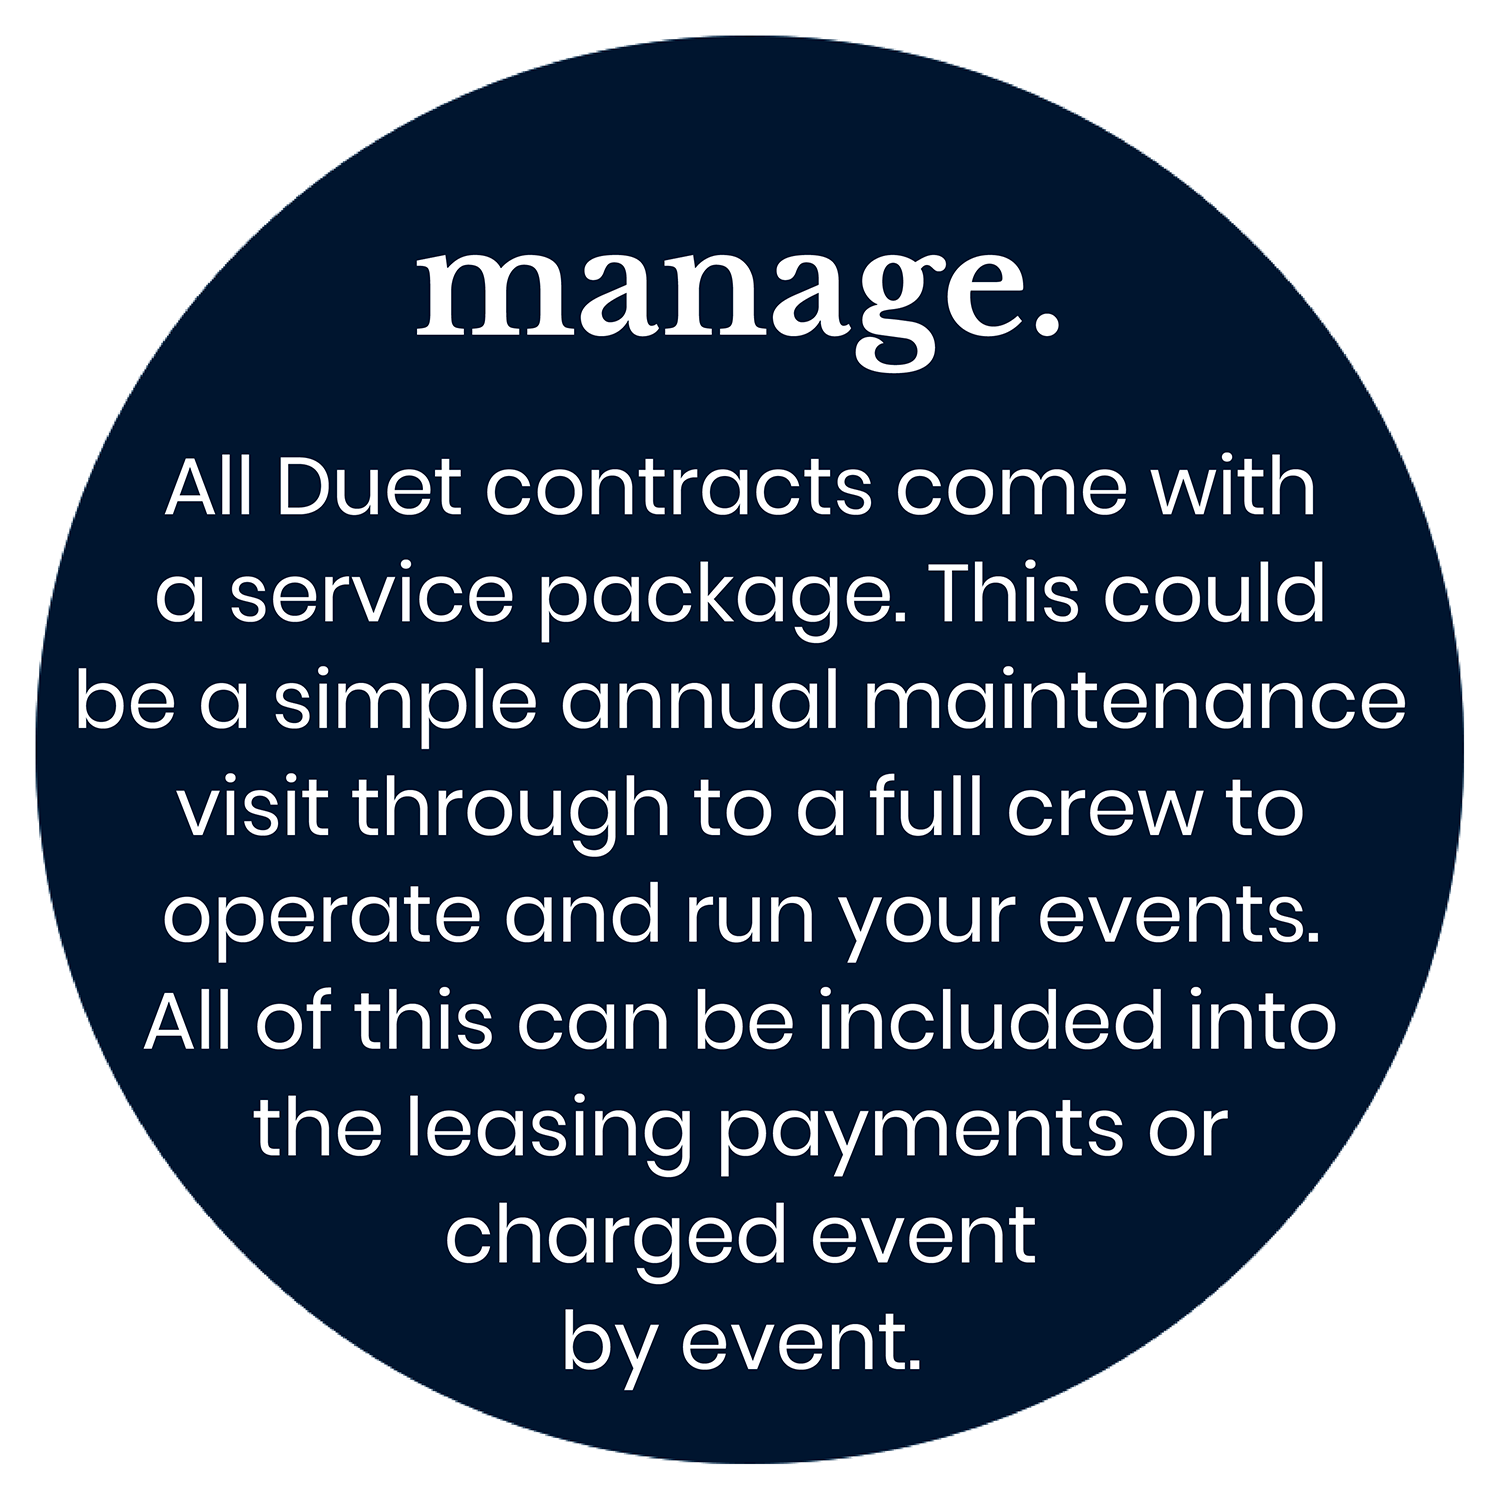 Manage. All Duet contracts come with a service package. This could be a simple annual maintenance visit through to a full crew to operate and run your events. All of this can be included into the leasing payments or charged event by event.